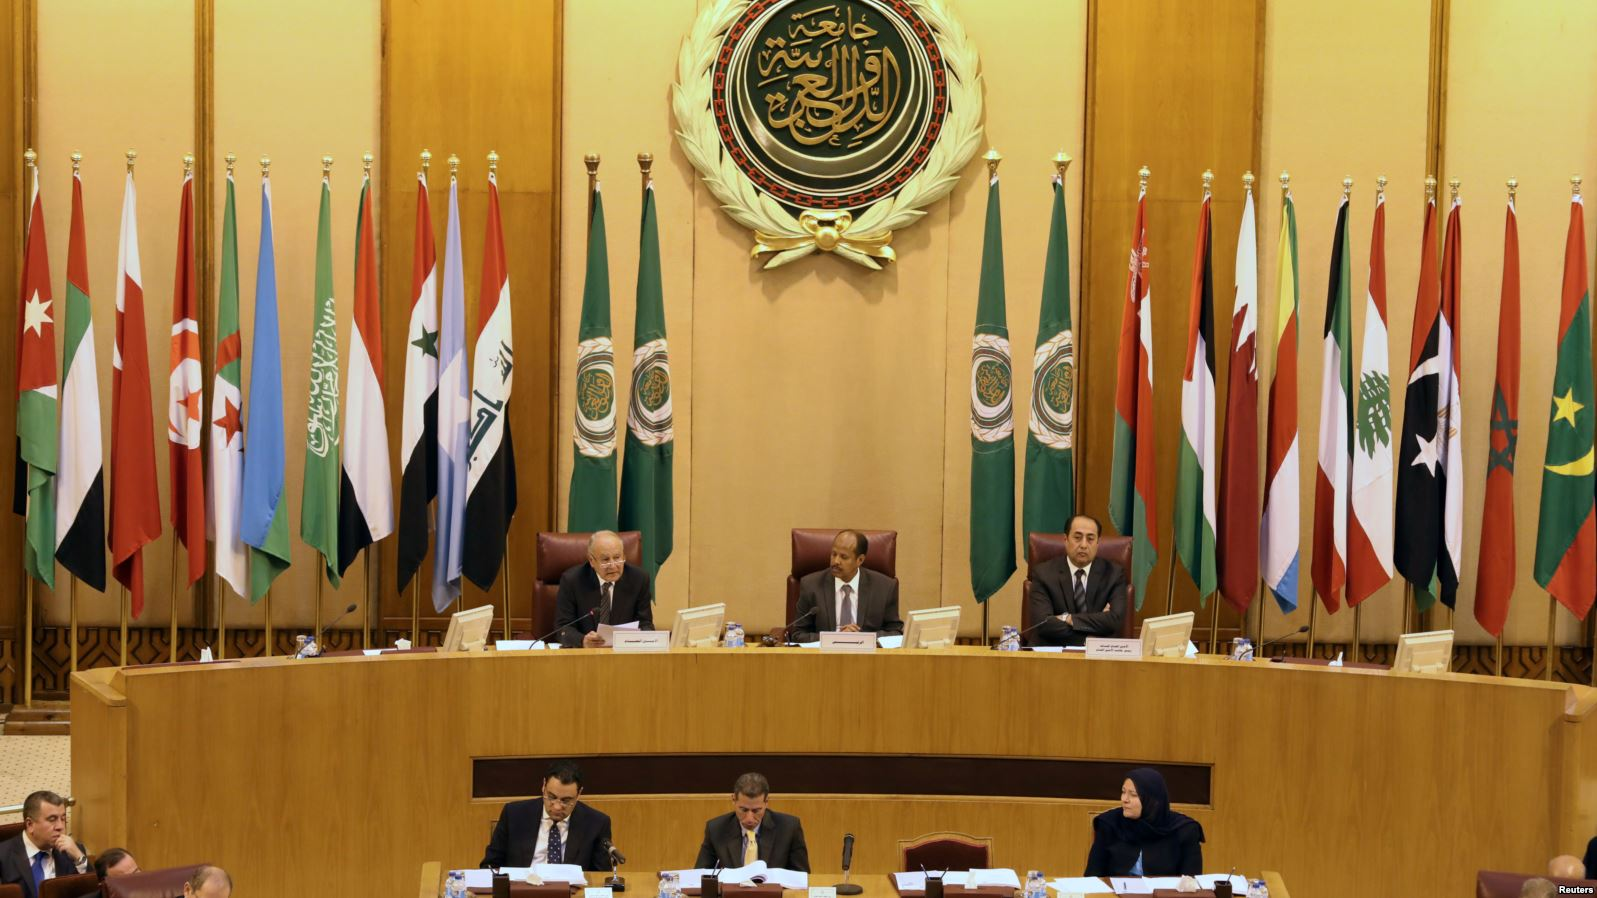 Abbasi to present Pak stance on Jerusalem at OIC summit